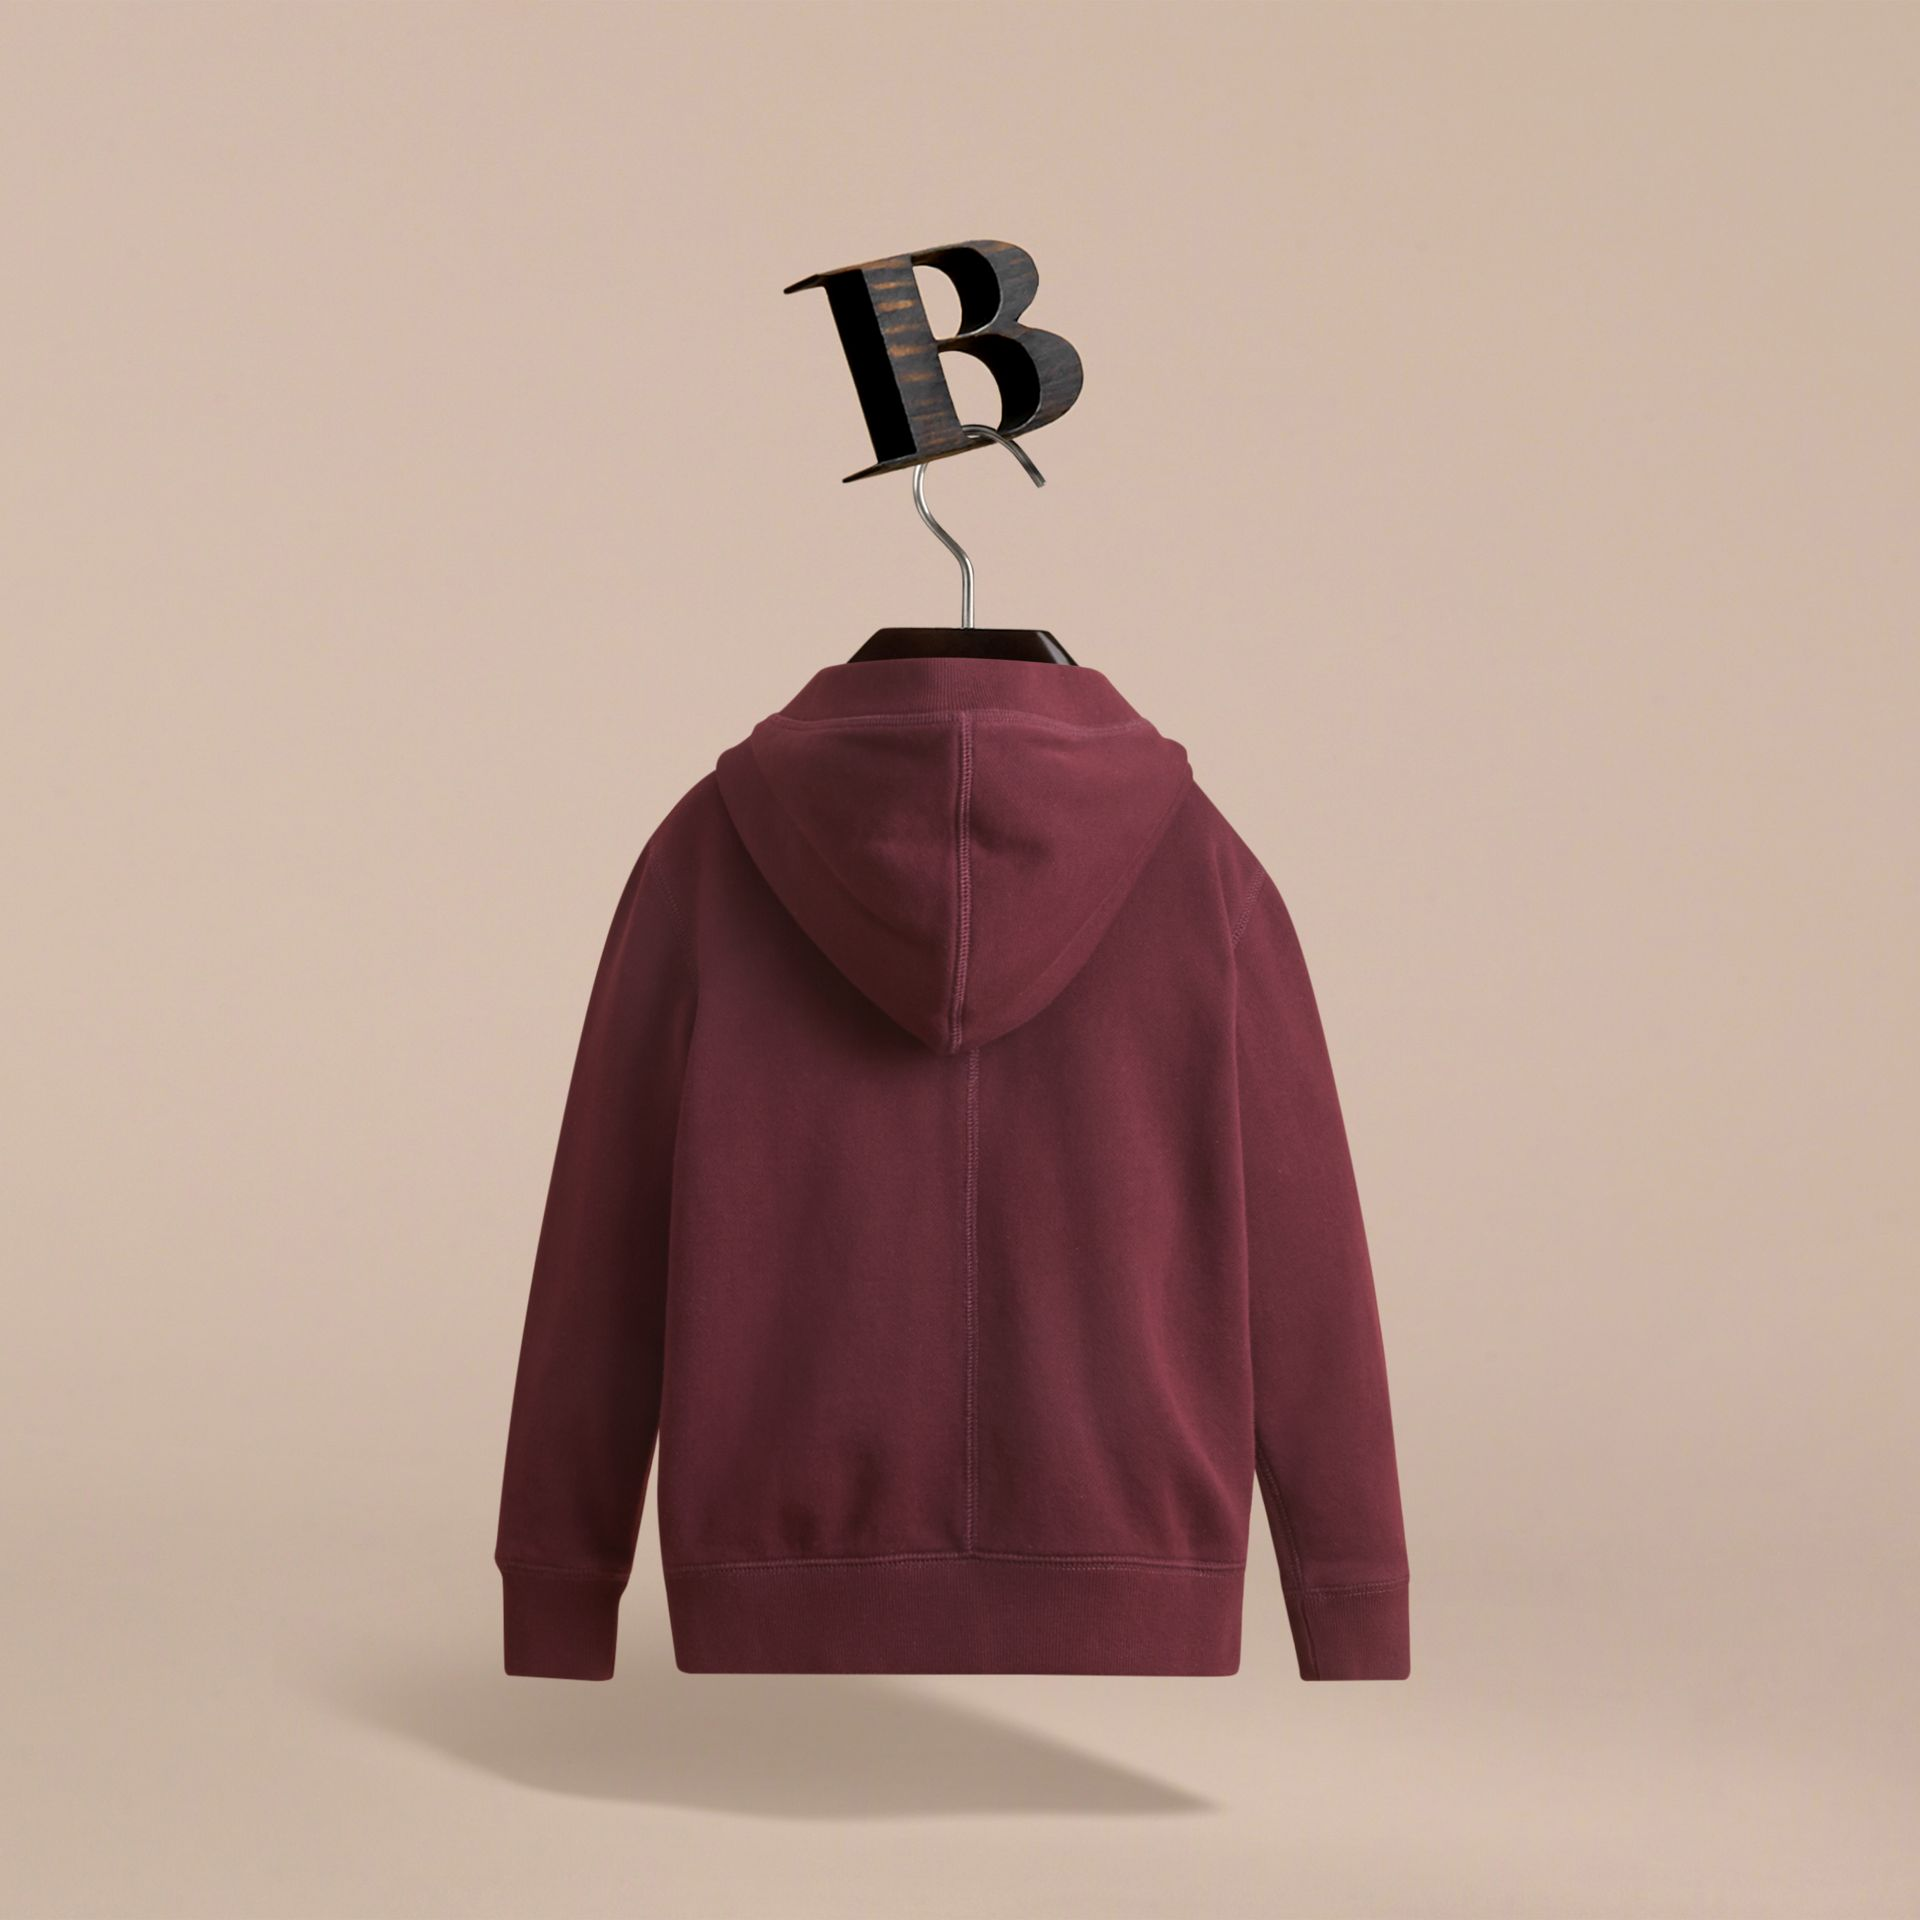 Hooded Cotton Top in Burgundy - Boy | Burberry United Kingdom - gallery image 3